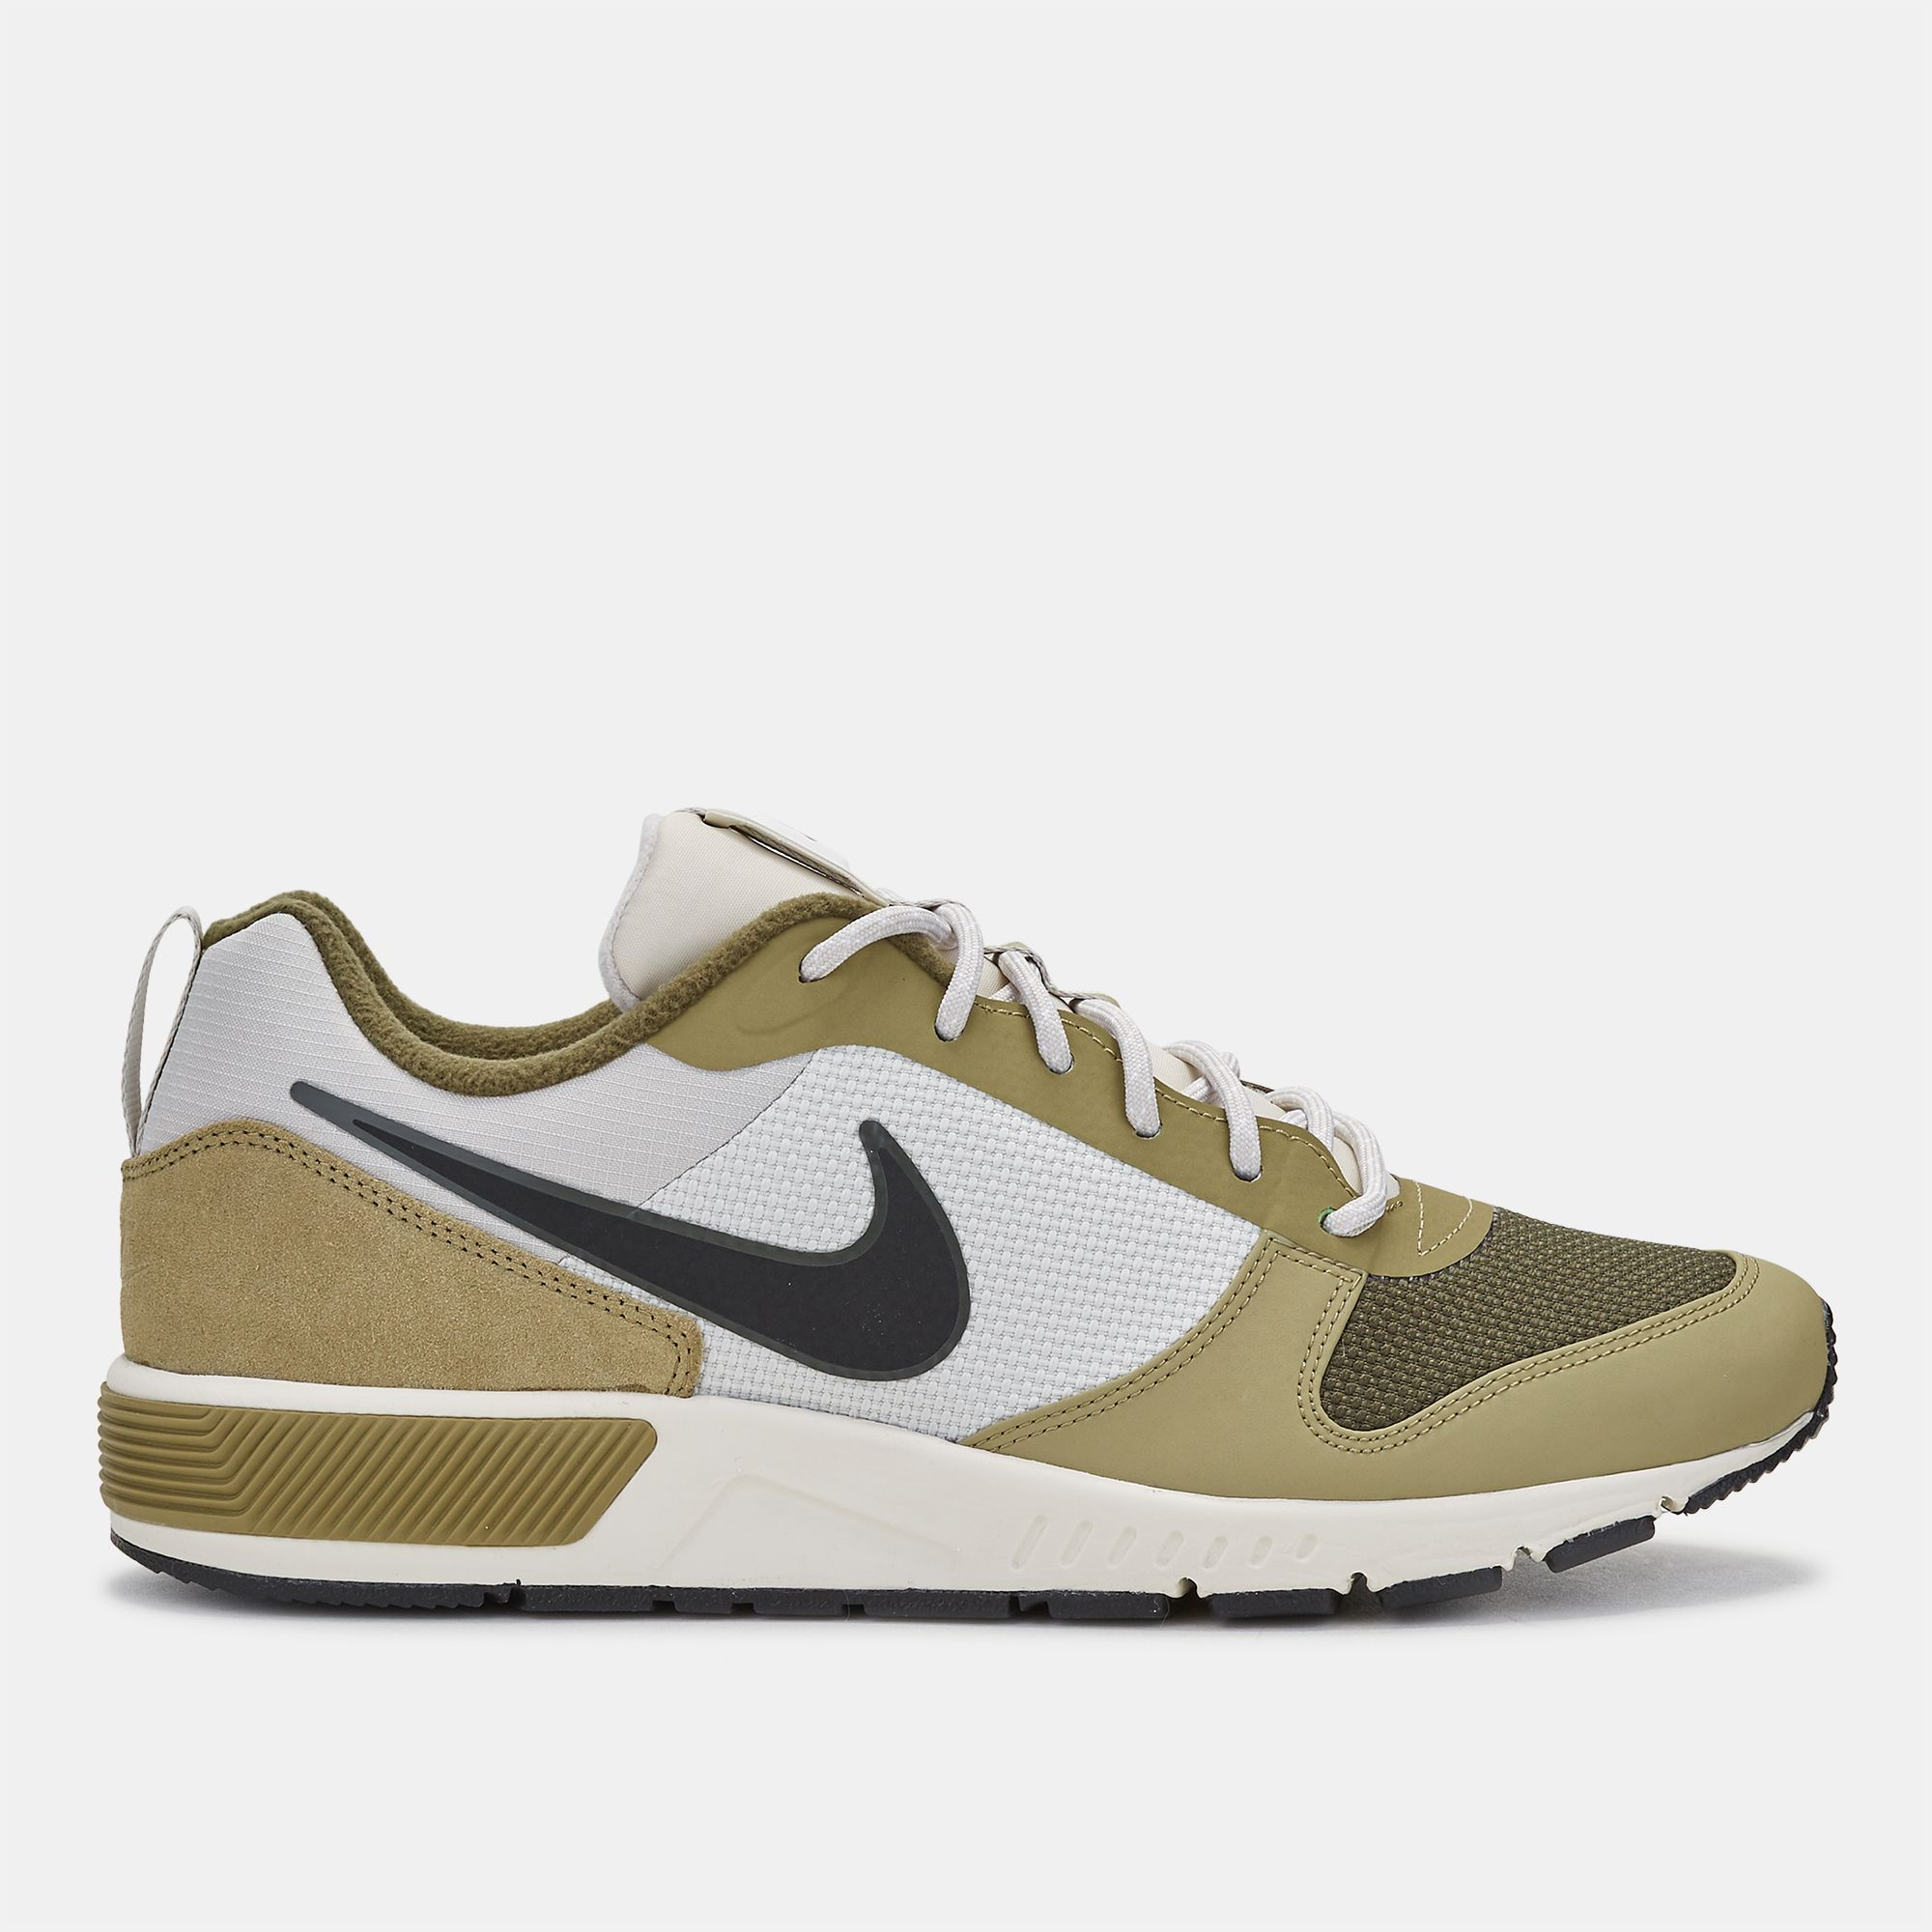 reputable site 9d277 bd609 Shop White Nike Nightgazer Trail Shoe for Mens by Nike  SSS